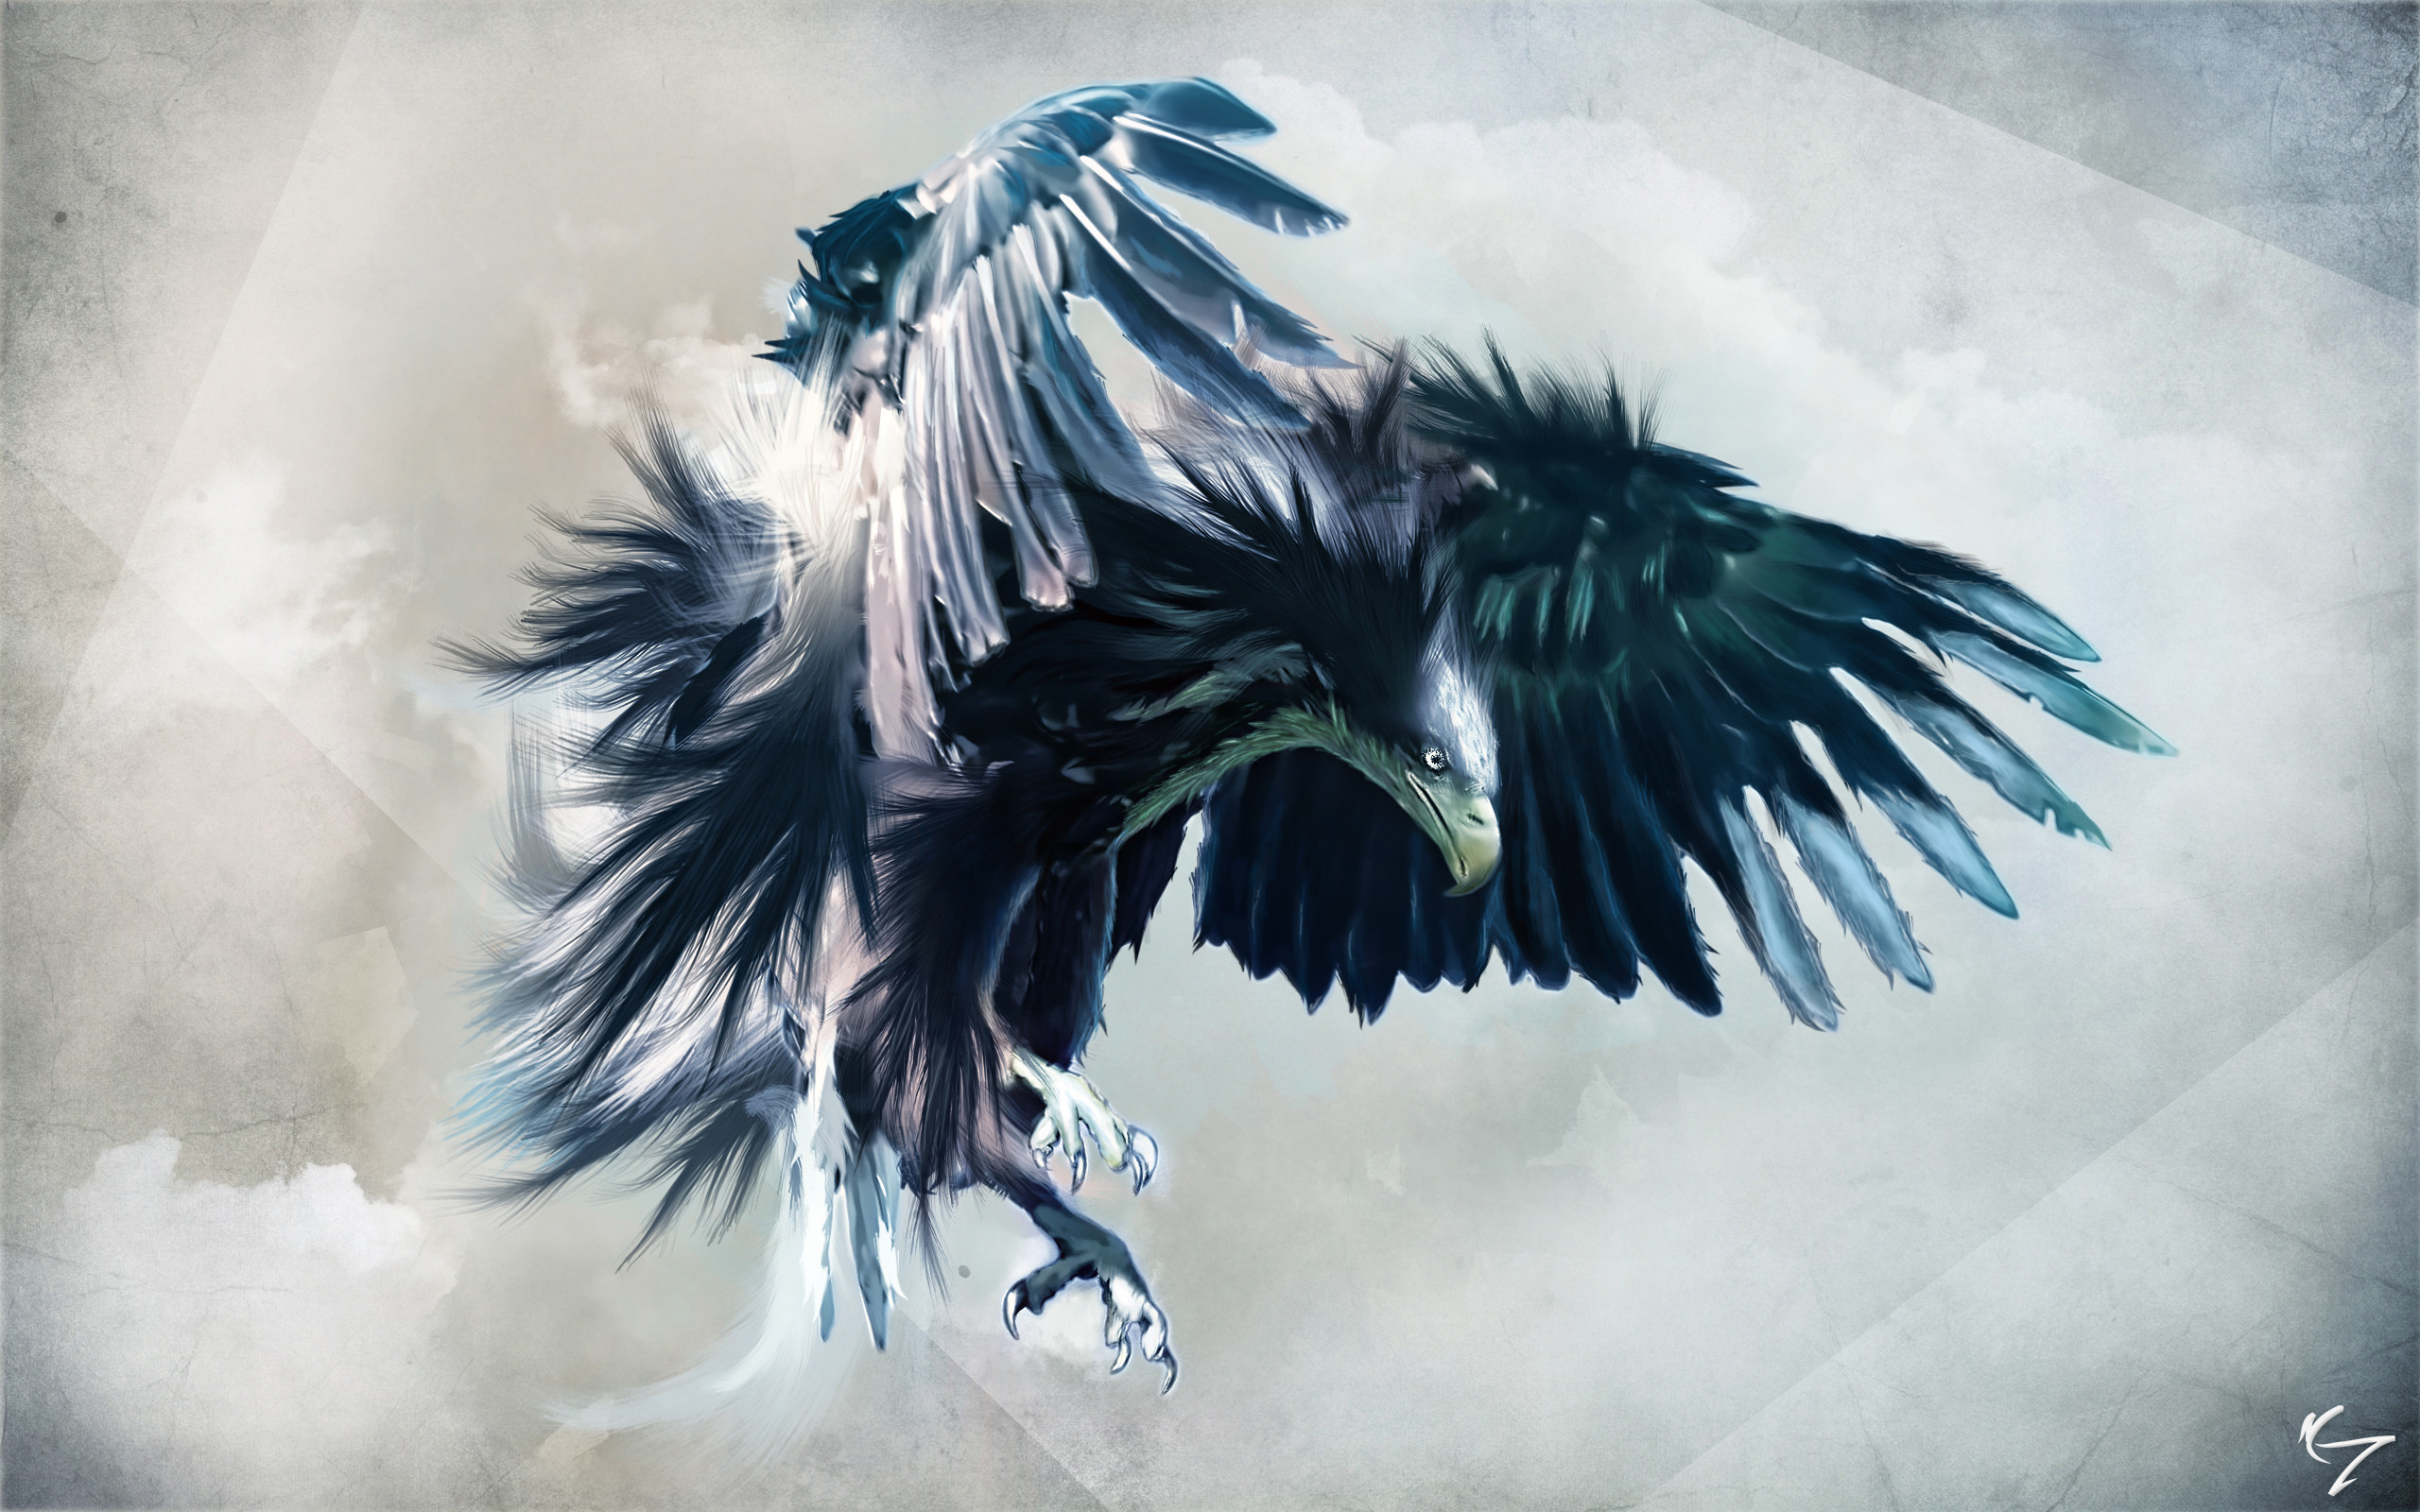 Res: 2560x1600, HD Wallpaper | Background Image ID:418497